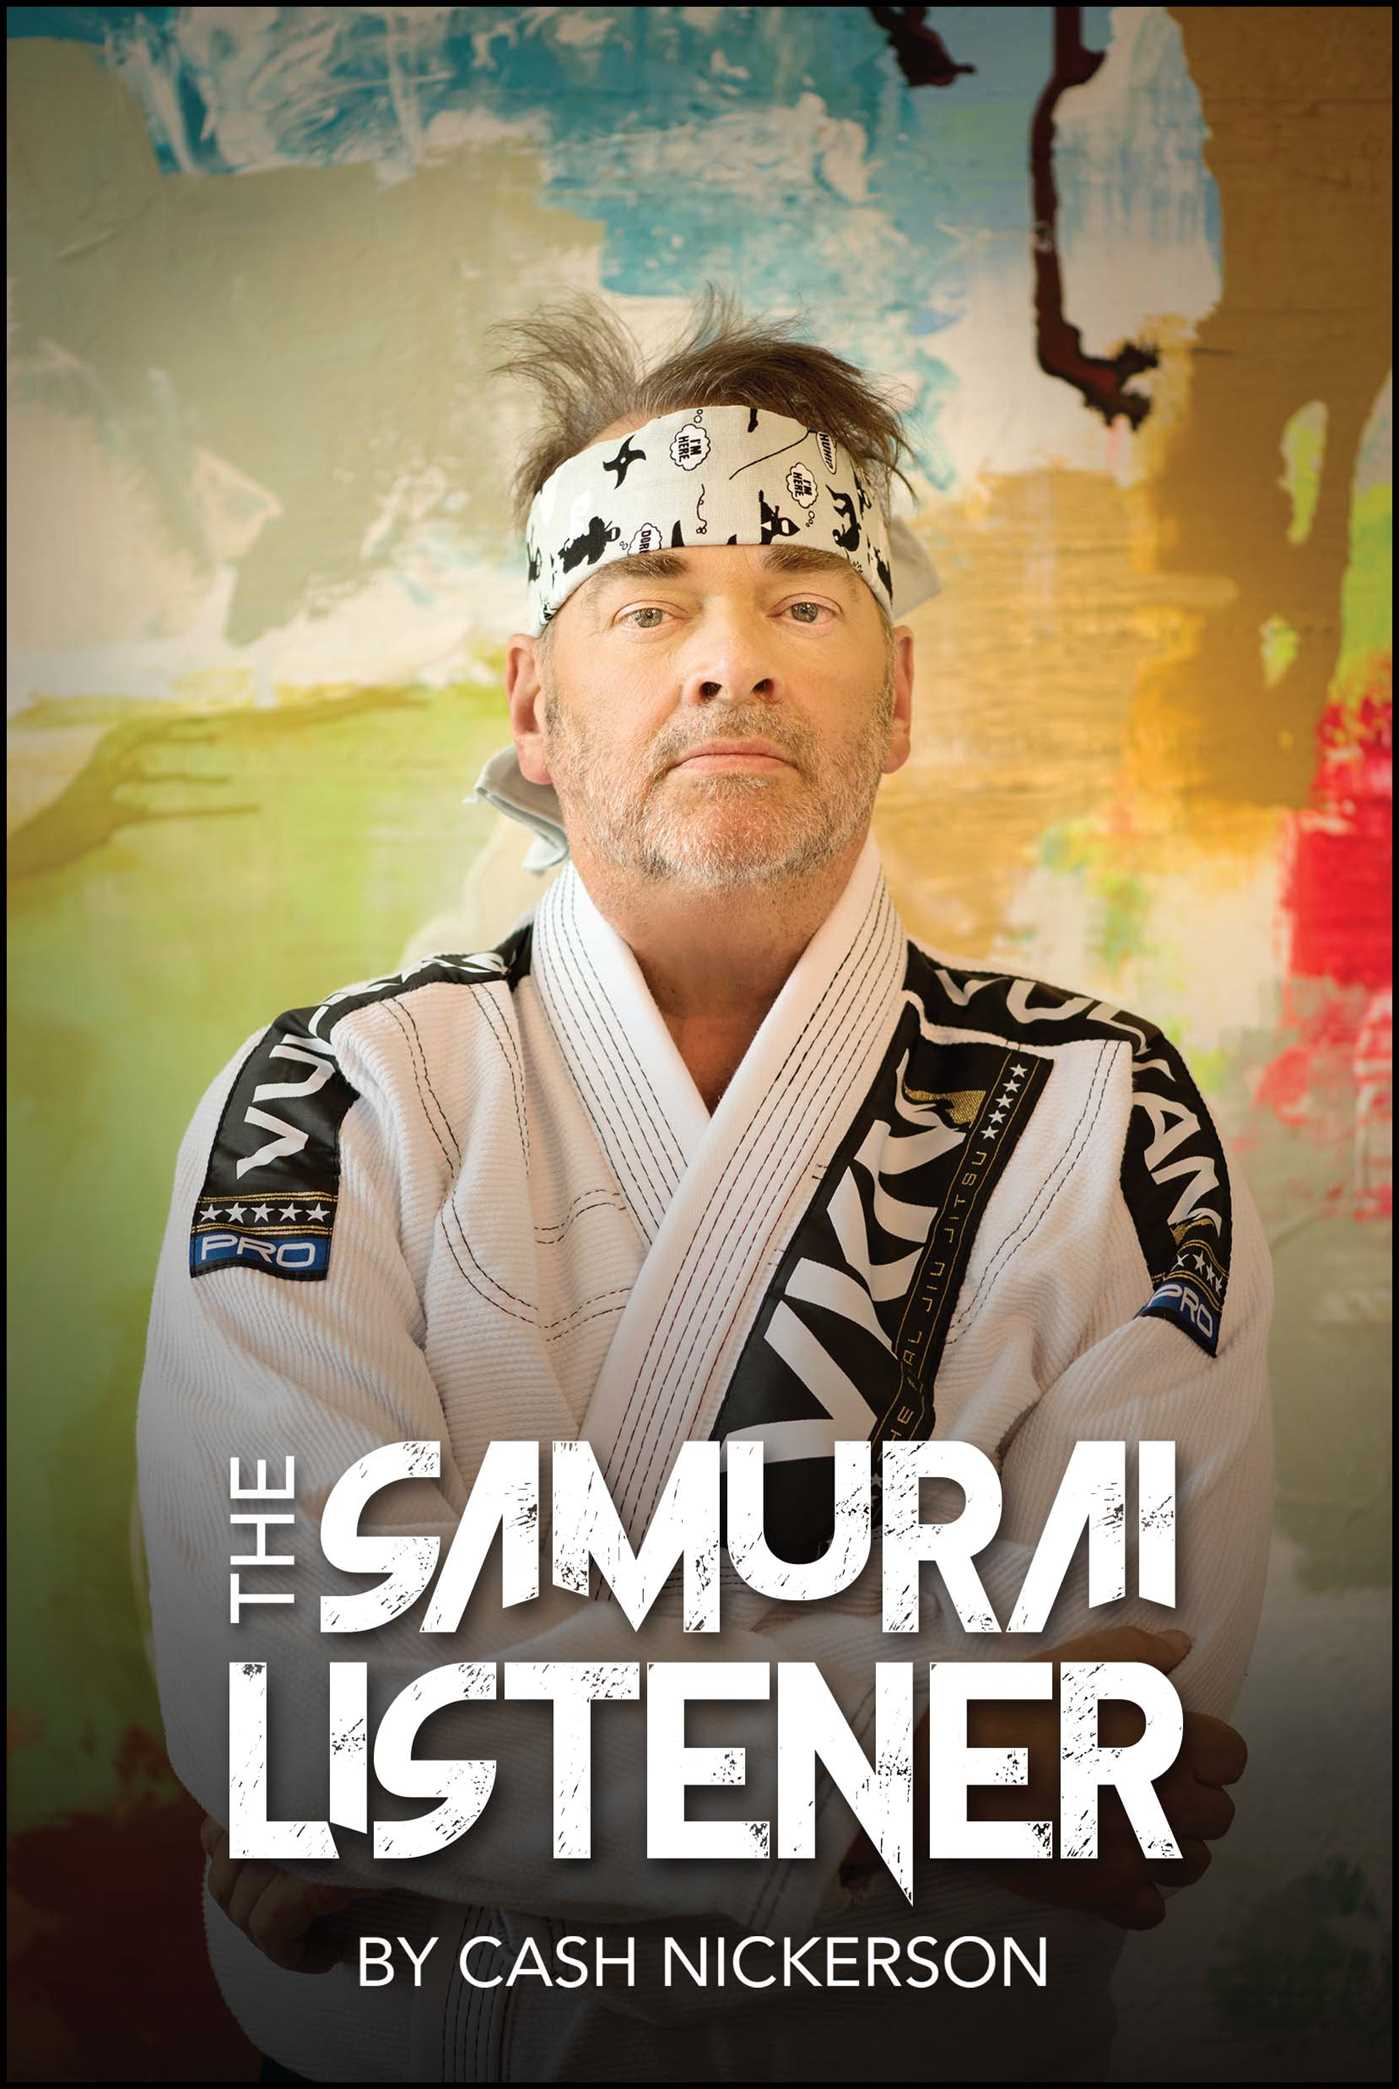 The samurai listener 9781682615256 hr